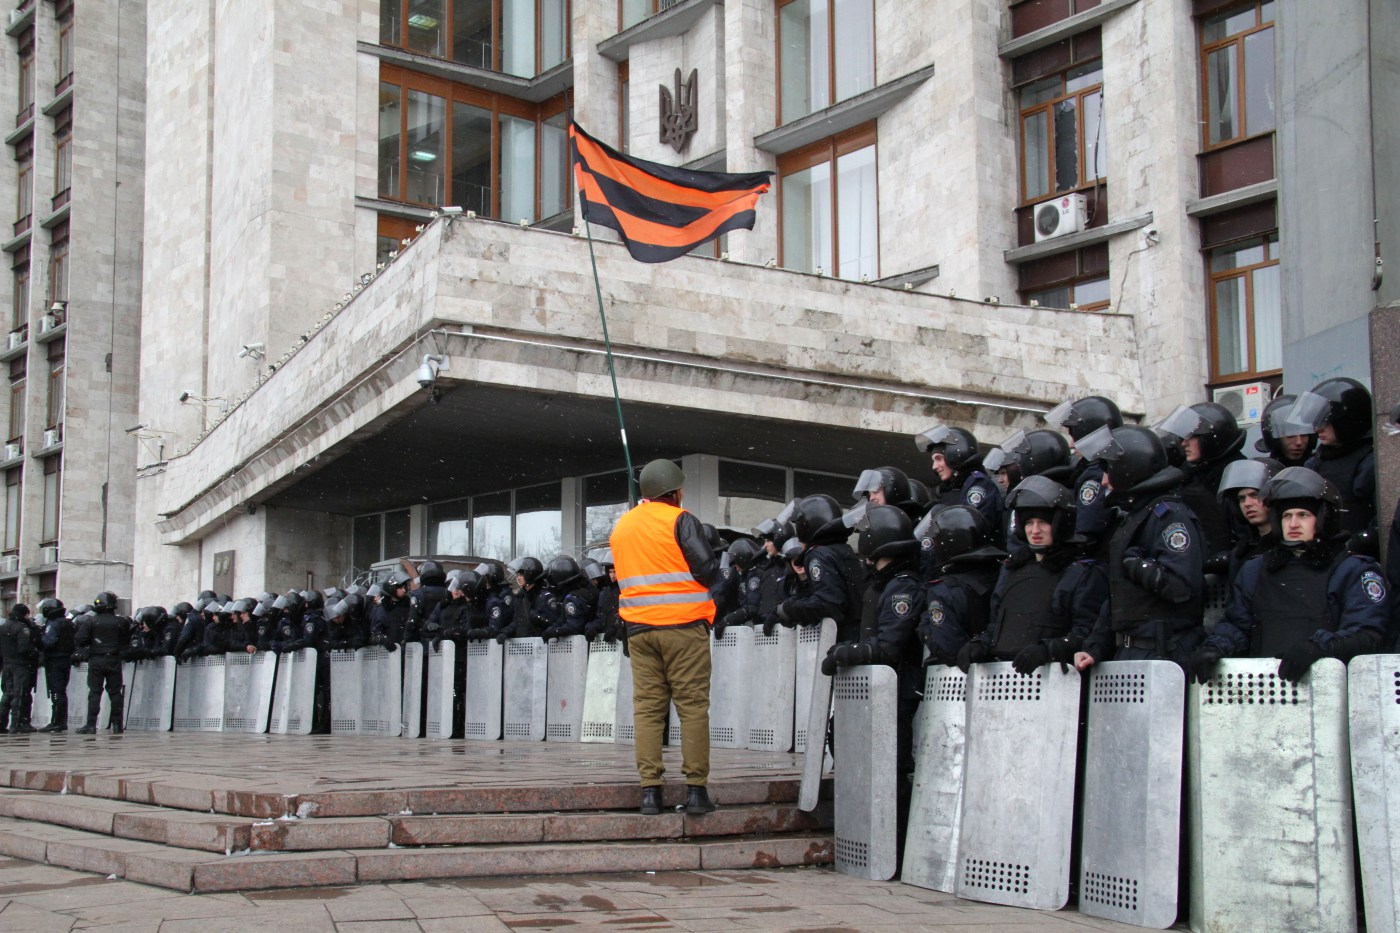 Security forces in the eastern Ukrainian city of Donetsk prepare to defend a government building from Russian separatists. (2014,  Guernica Magazine )